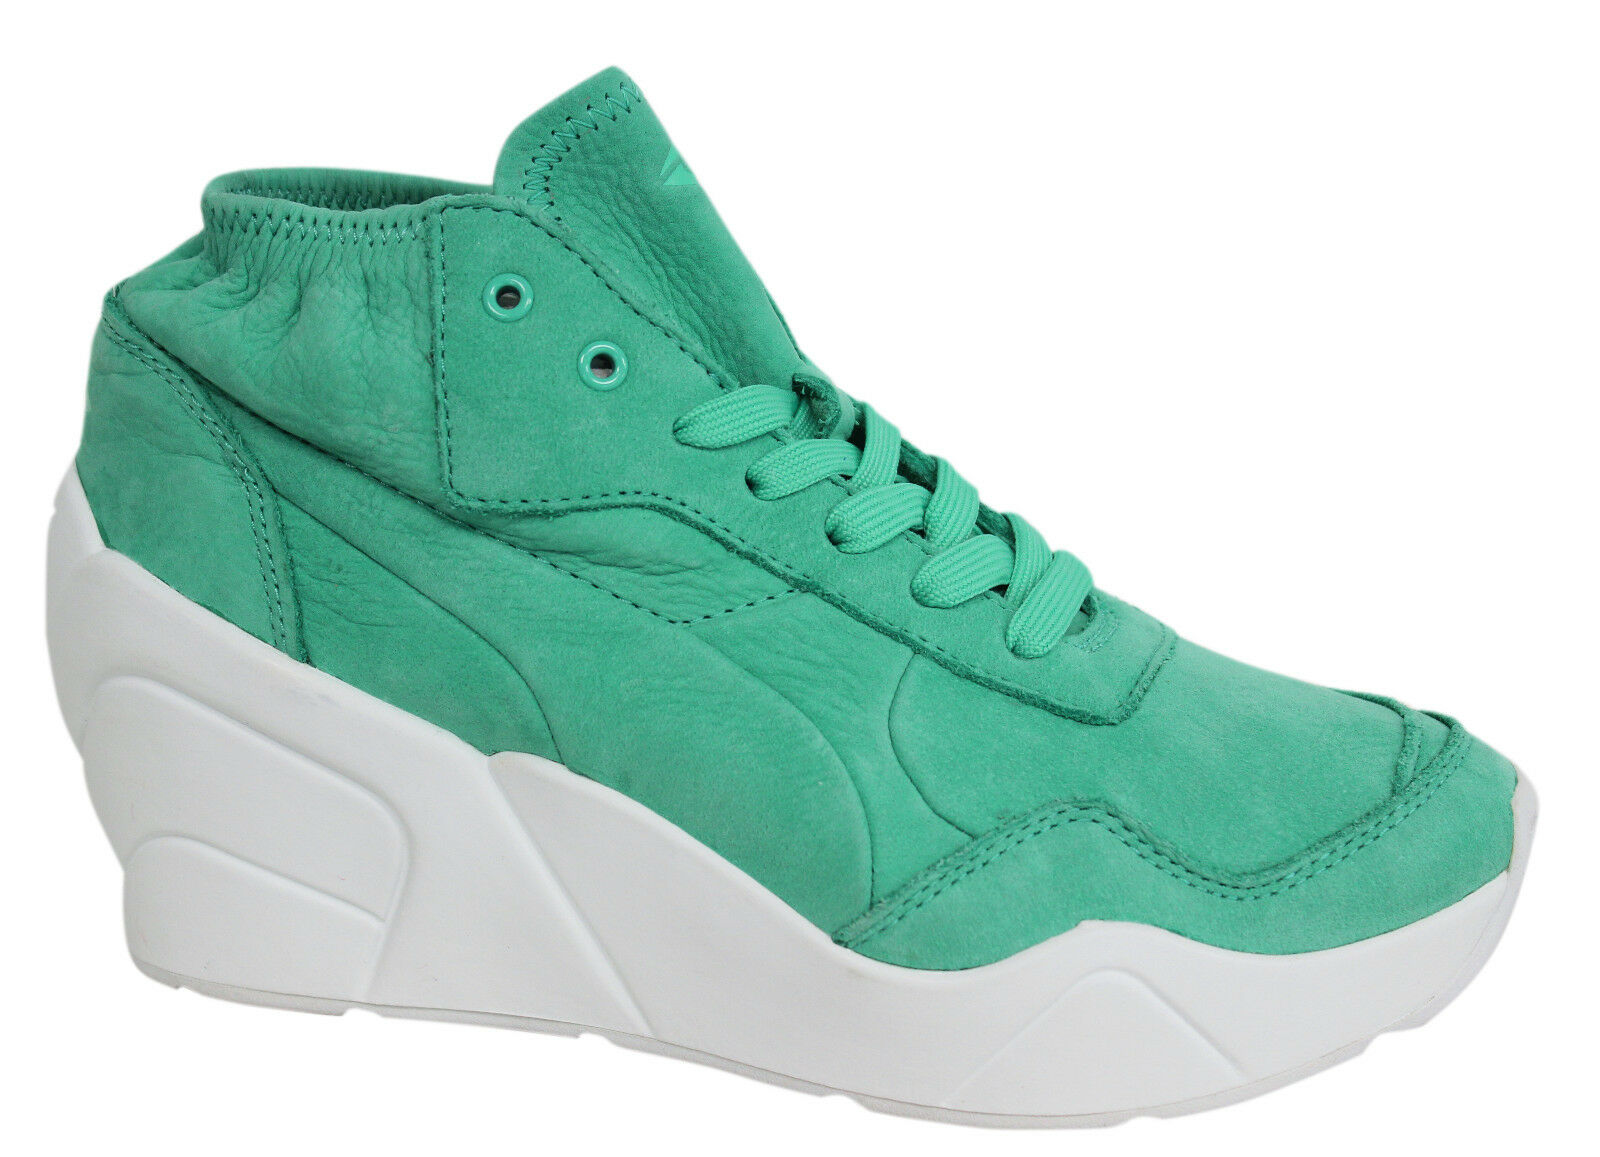 Puma Womens Lace Up Trinomic Green Wedge Leather Trainers 356378 04 M3 Great discount